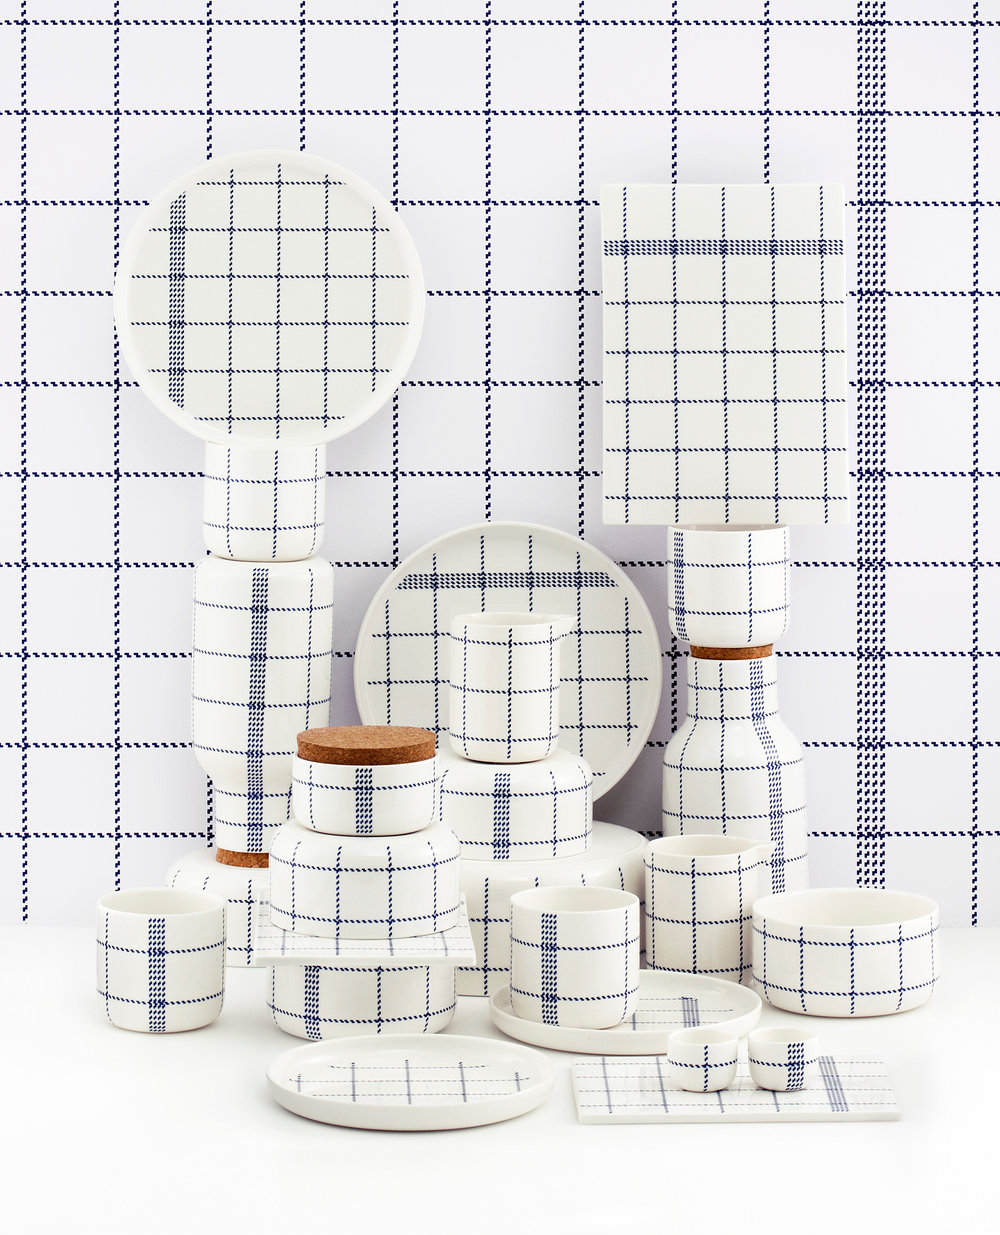 gry-fager-tableware-Normann-cph.jpg